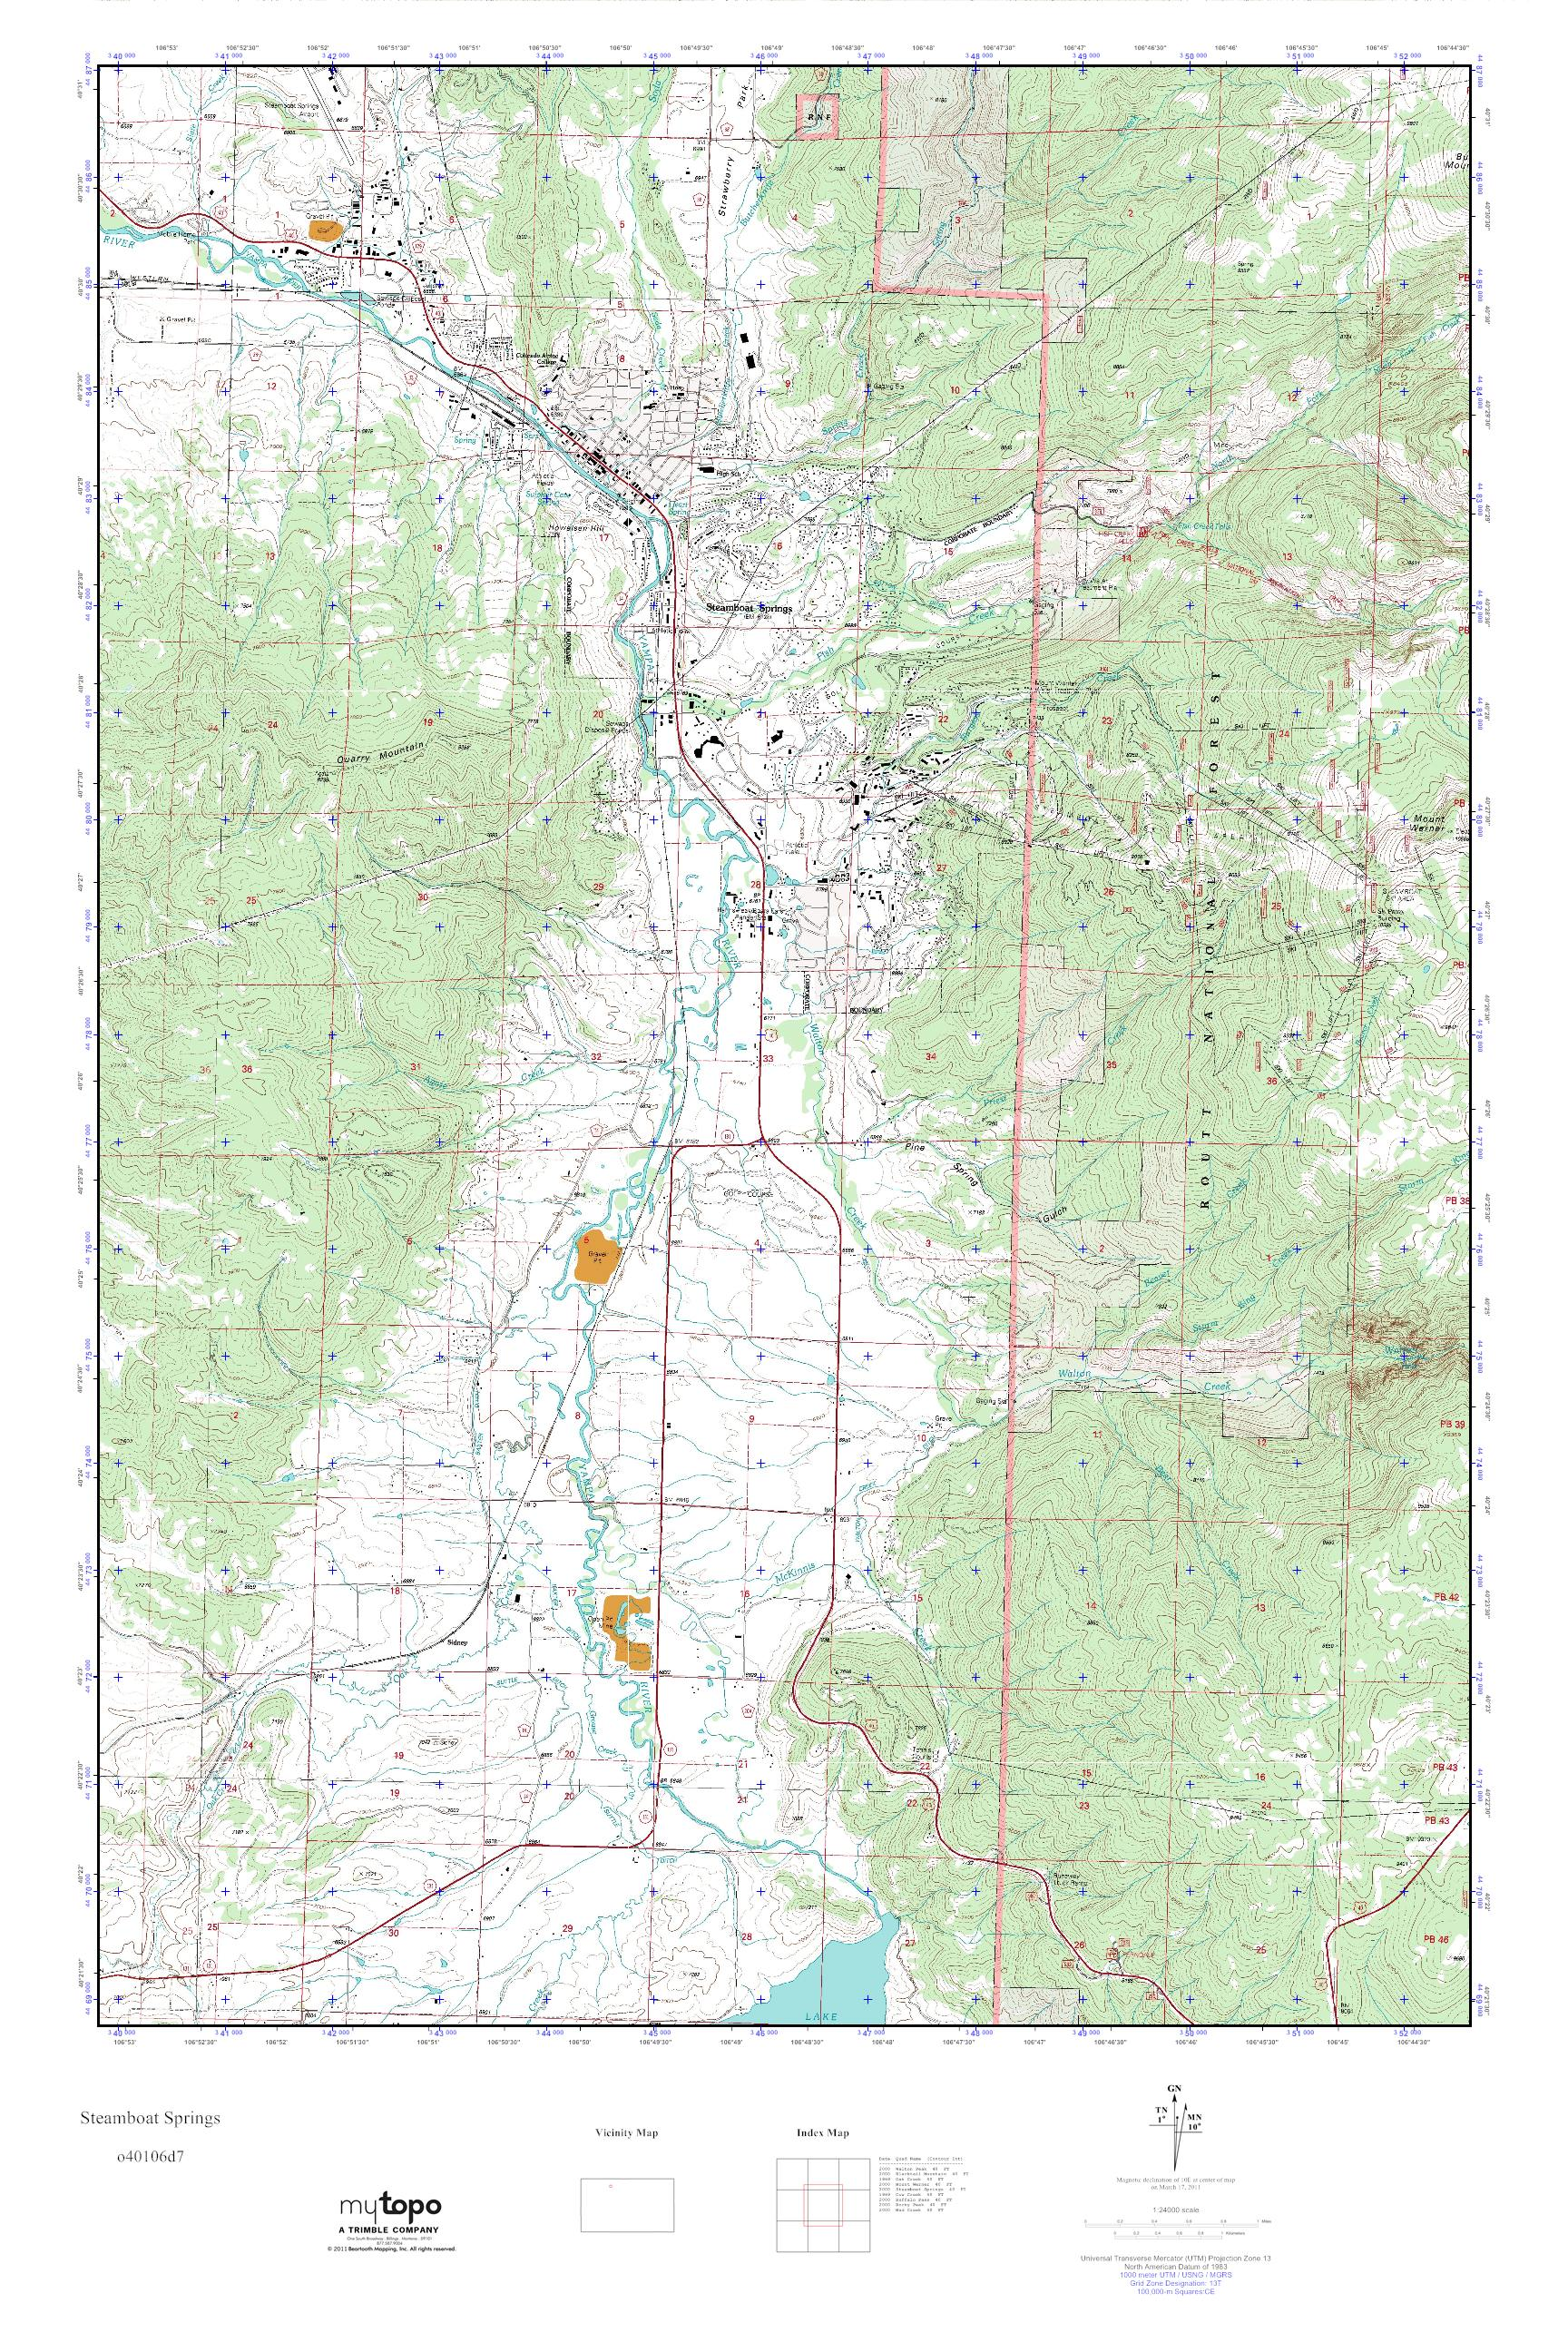 Steamboat Springs Map MyTopo Steamboat Springs, Colorado USGS Quad Topo Map